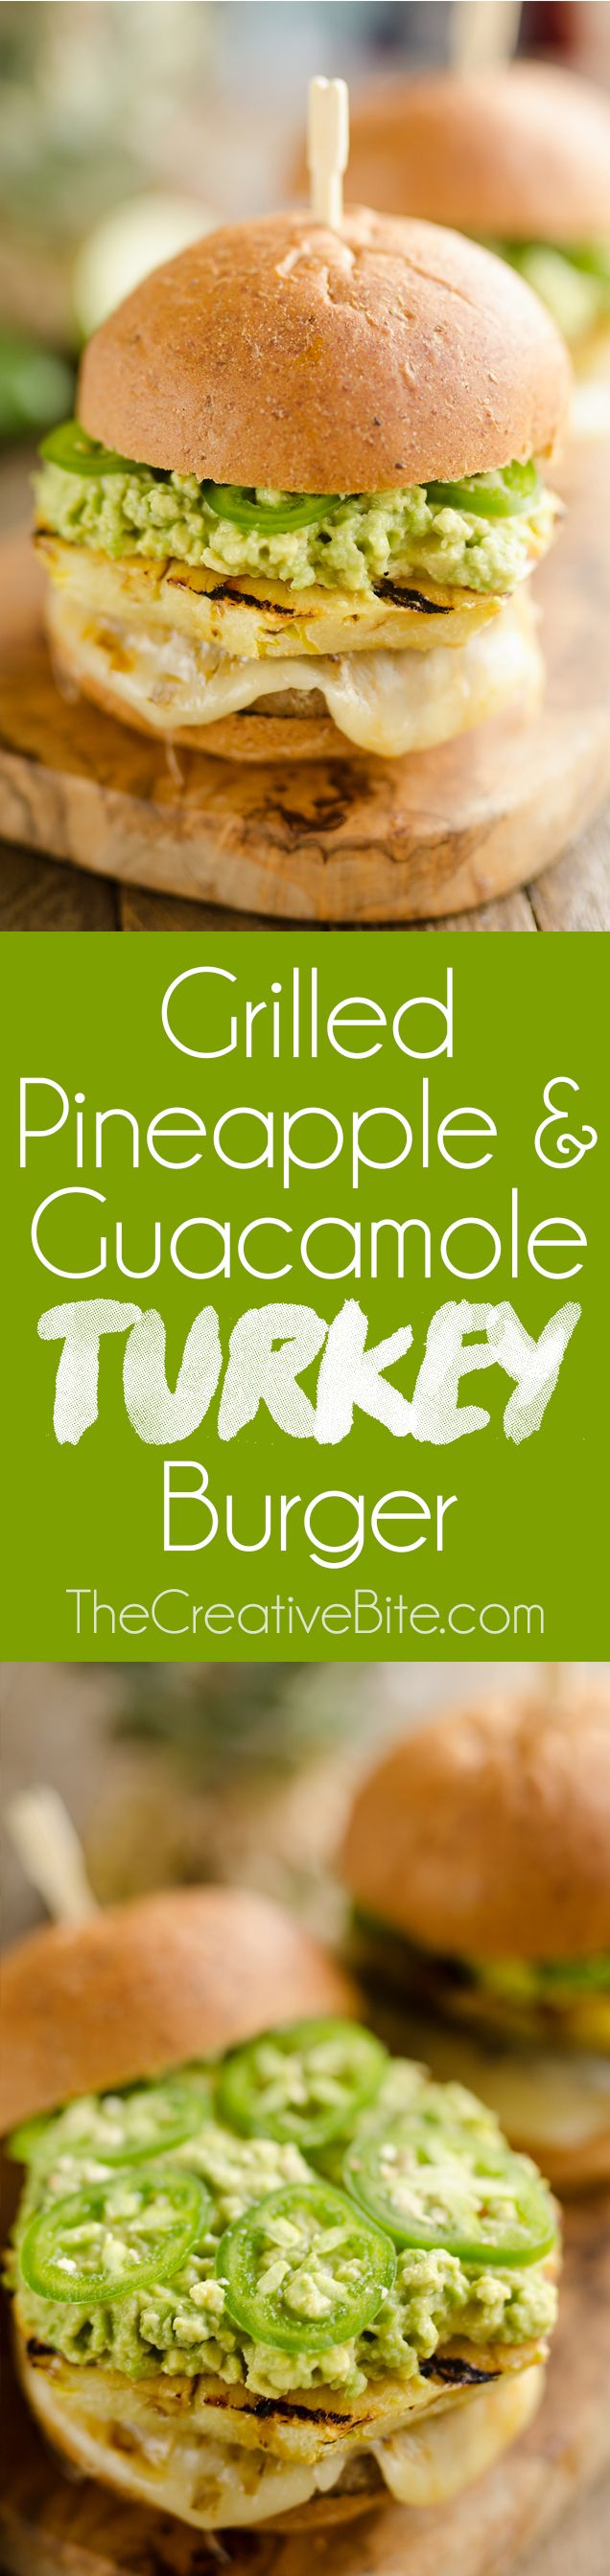 Grilled Pineapple & Guacamole Turkey Burgers are a healthy and easy recipe made on the grill in just 20 minutes! Juicy Jennie-O Turkey Burgers are topped with pepper jack cheese, sweet grilled pineapple, guacamole and fresh jalapeños for a zesty burger perfect for any grill out. #JennieO #Ad #SwitchCircle #TurkeyBurger